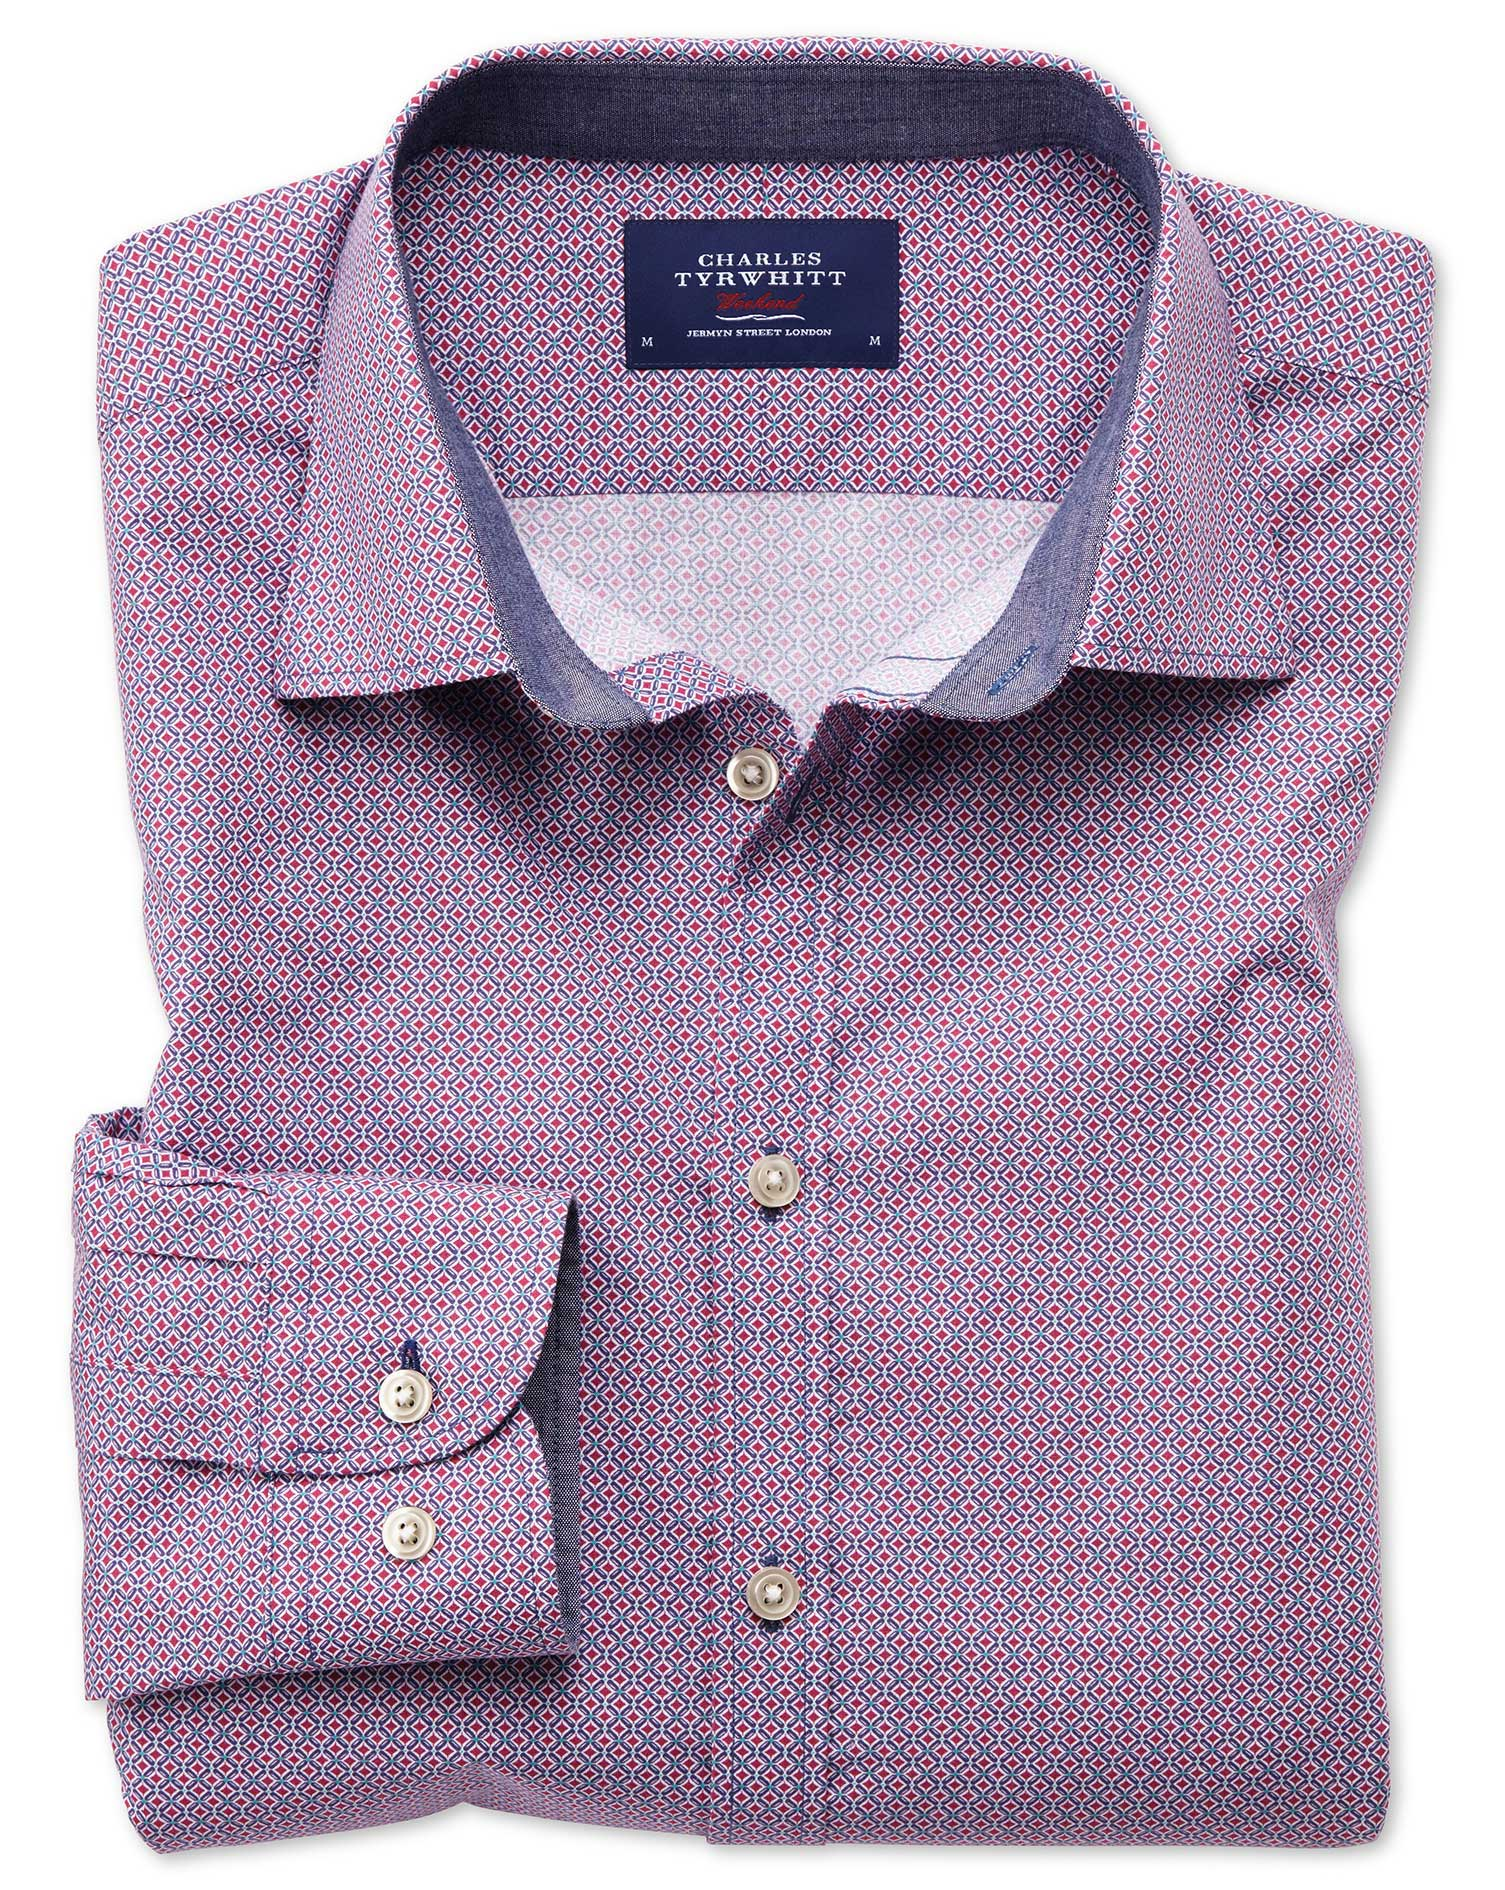 Classic Fit Magenta and Blue Print Cotton Shirt Single Cuff Size Large by Charles Tyrwhitt